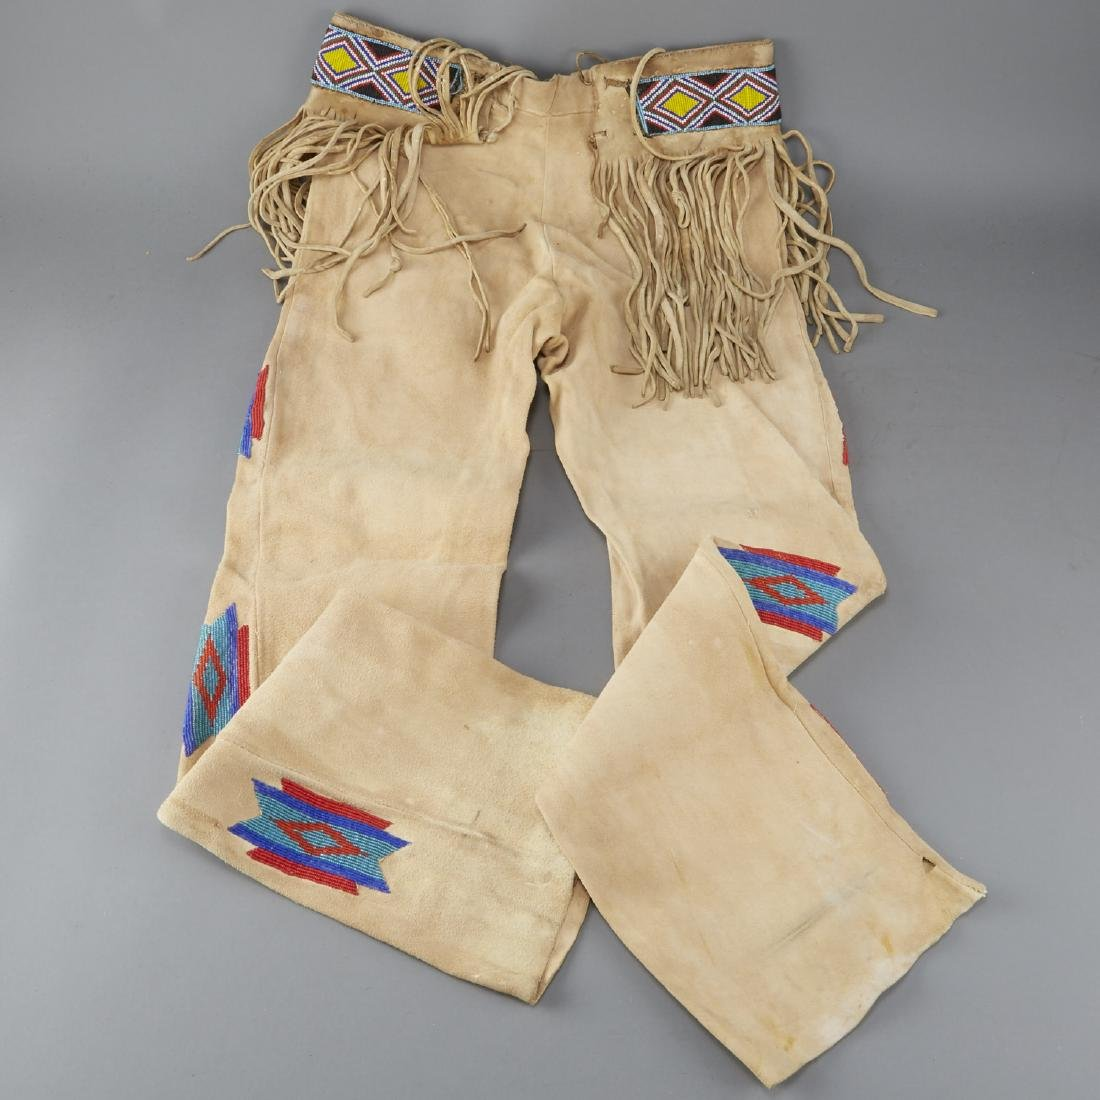 Native American Beaded Leather Pants - 5